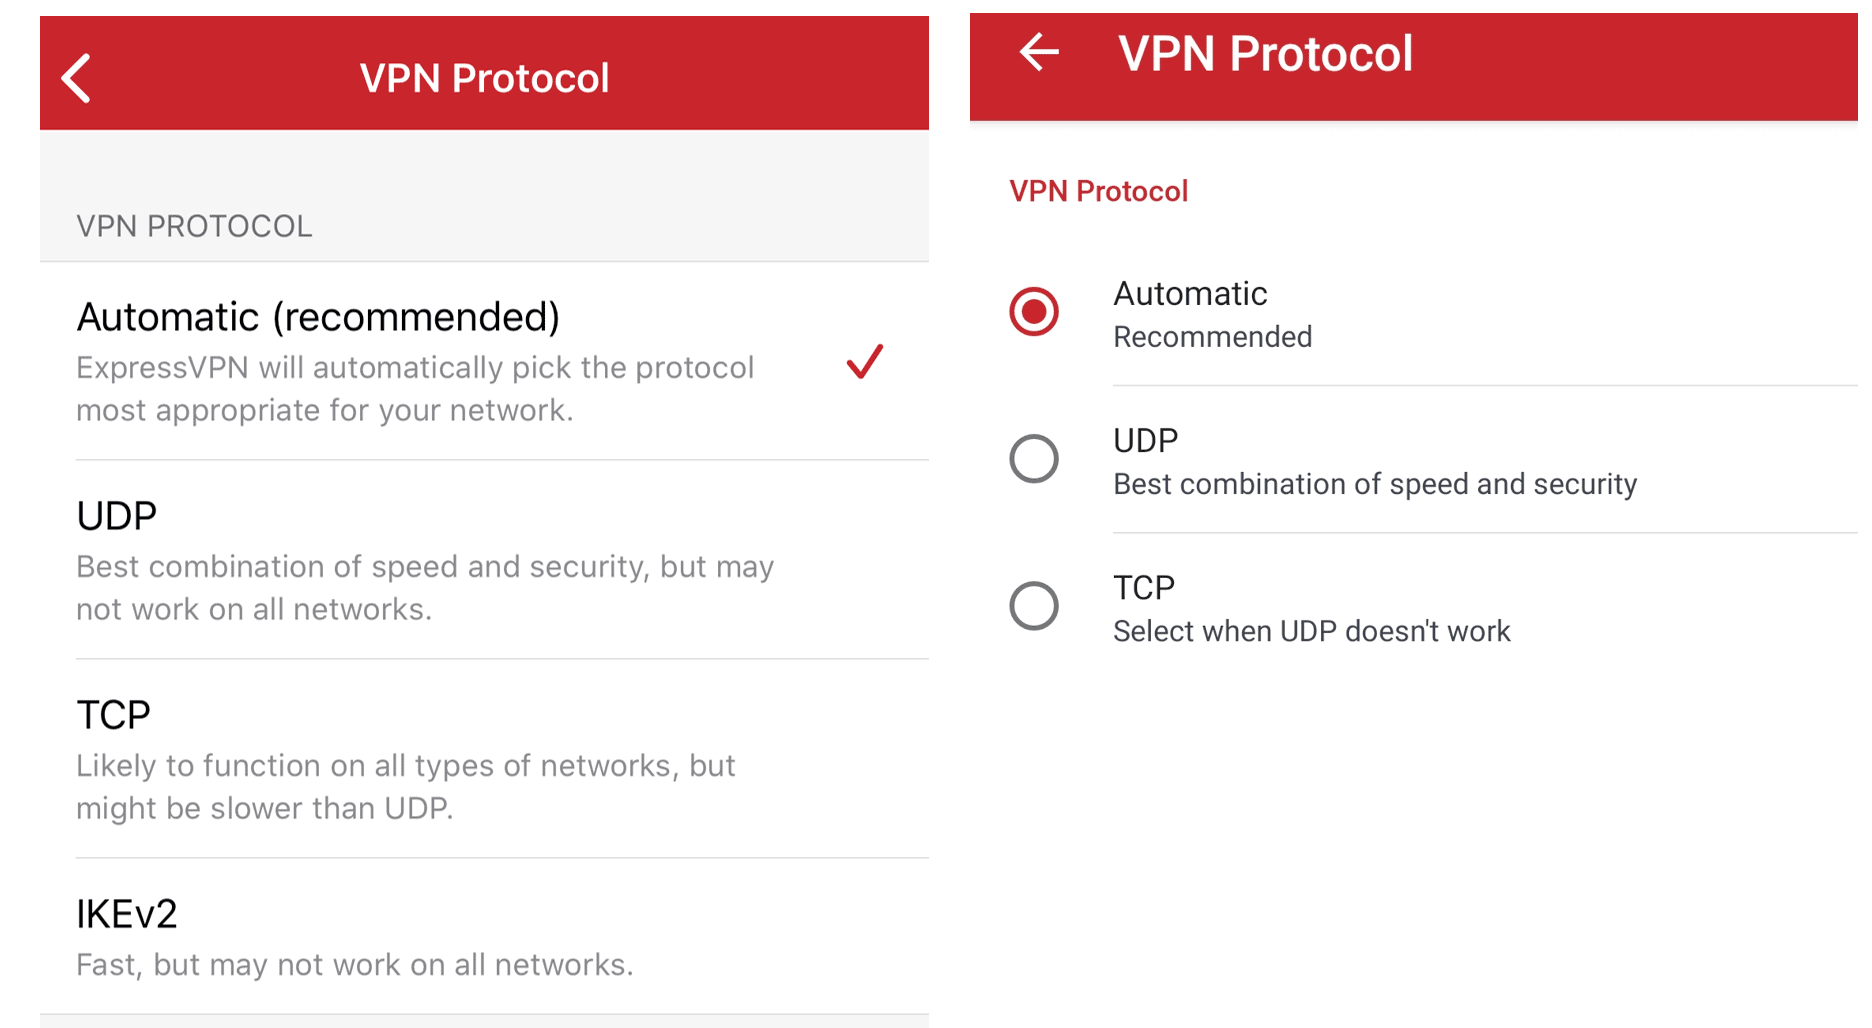 ExpressVPN protocol options